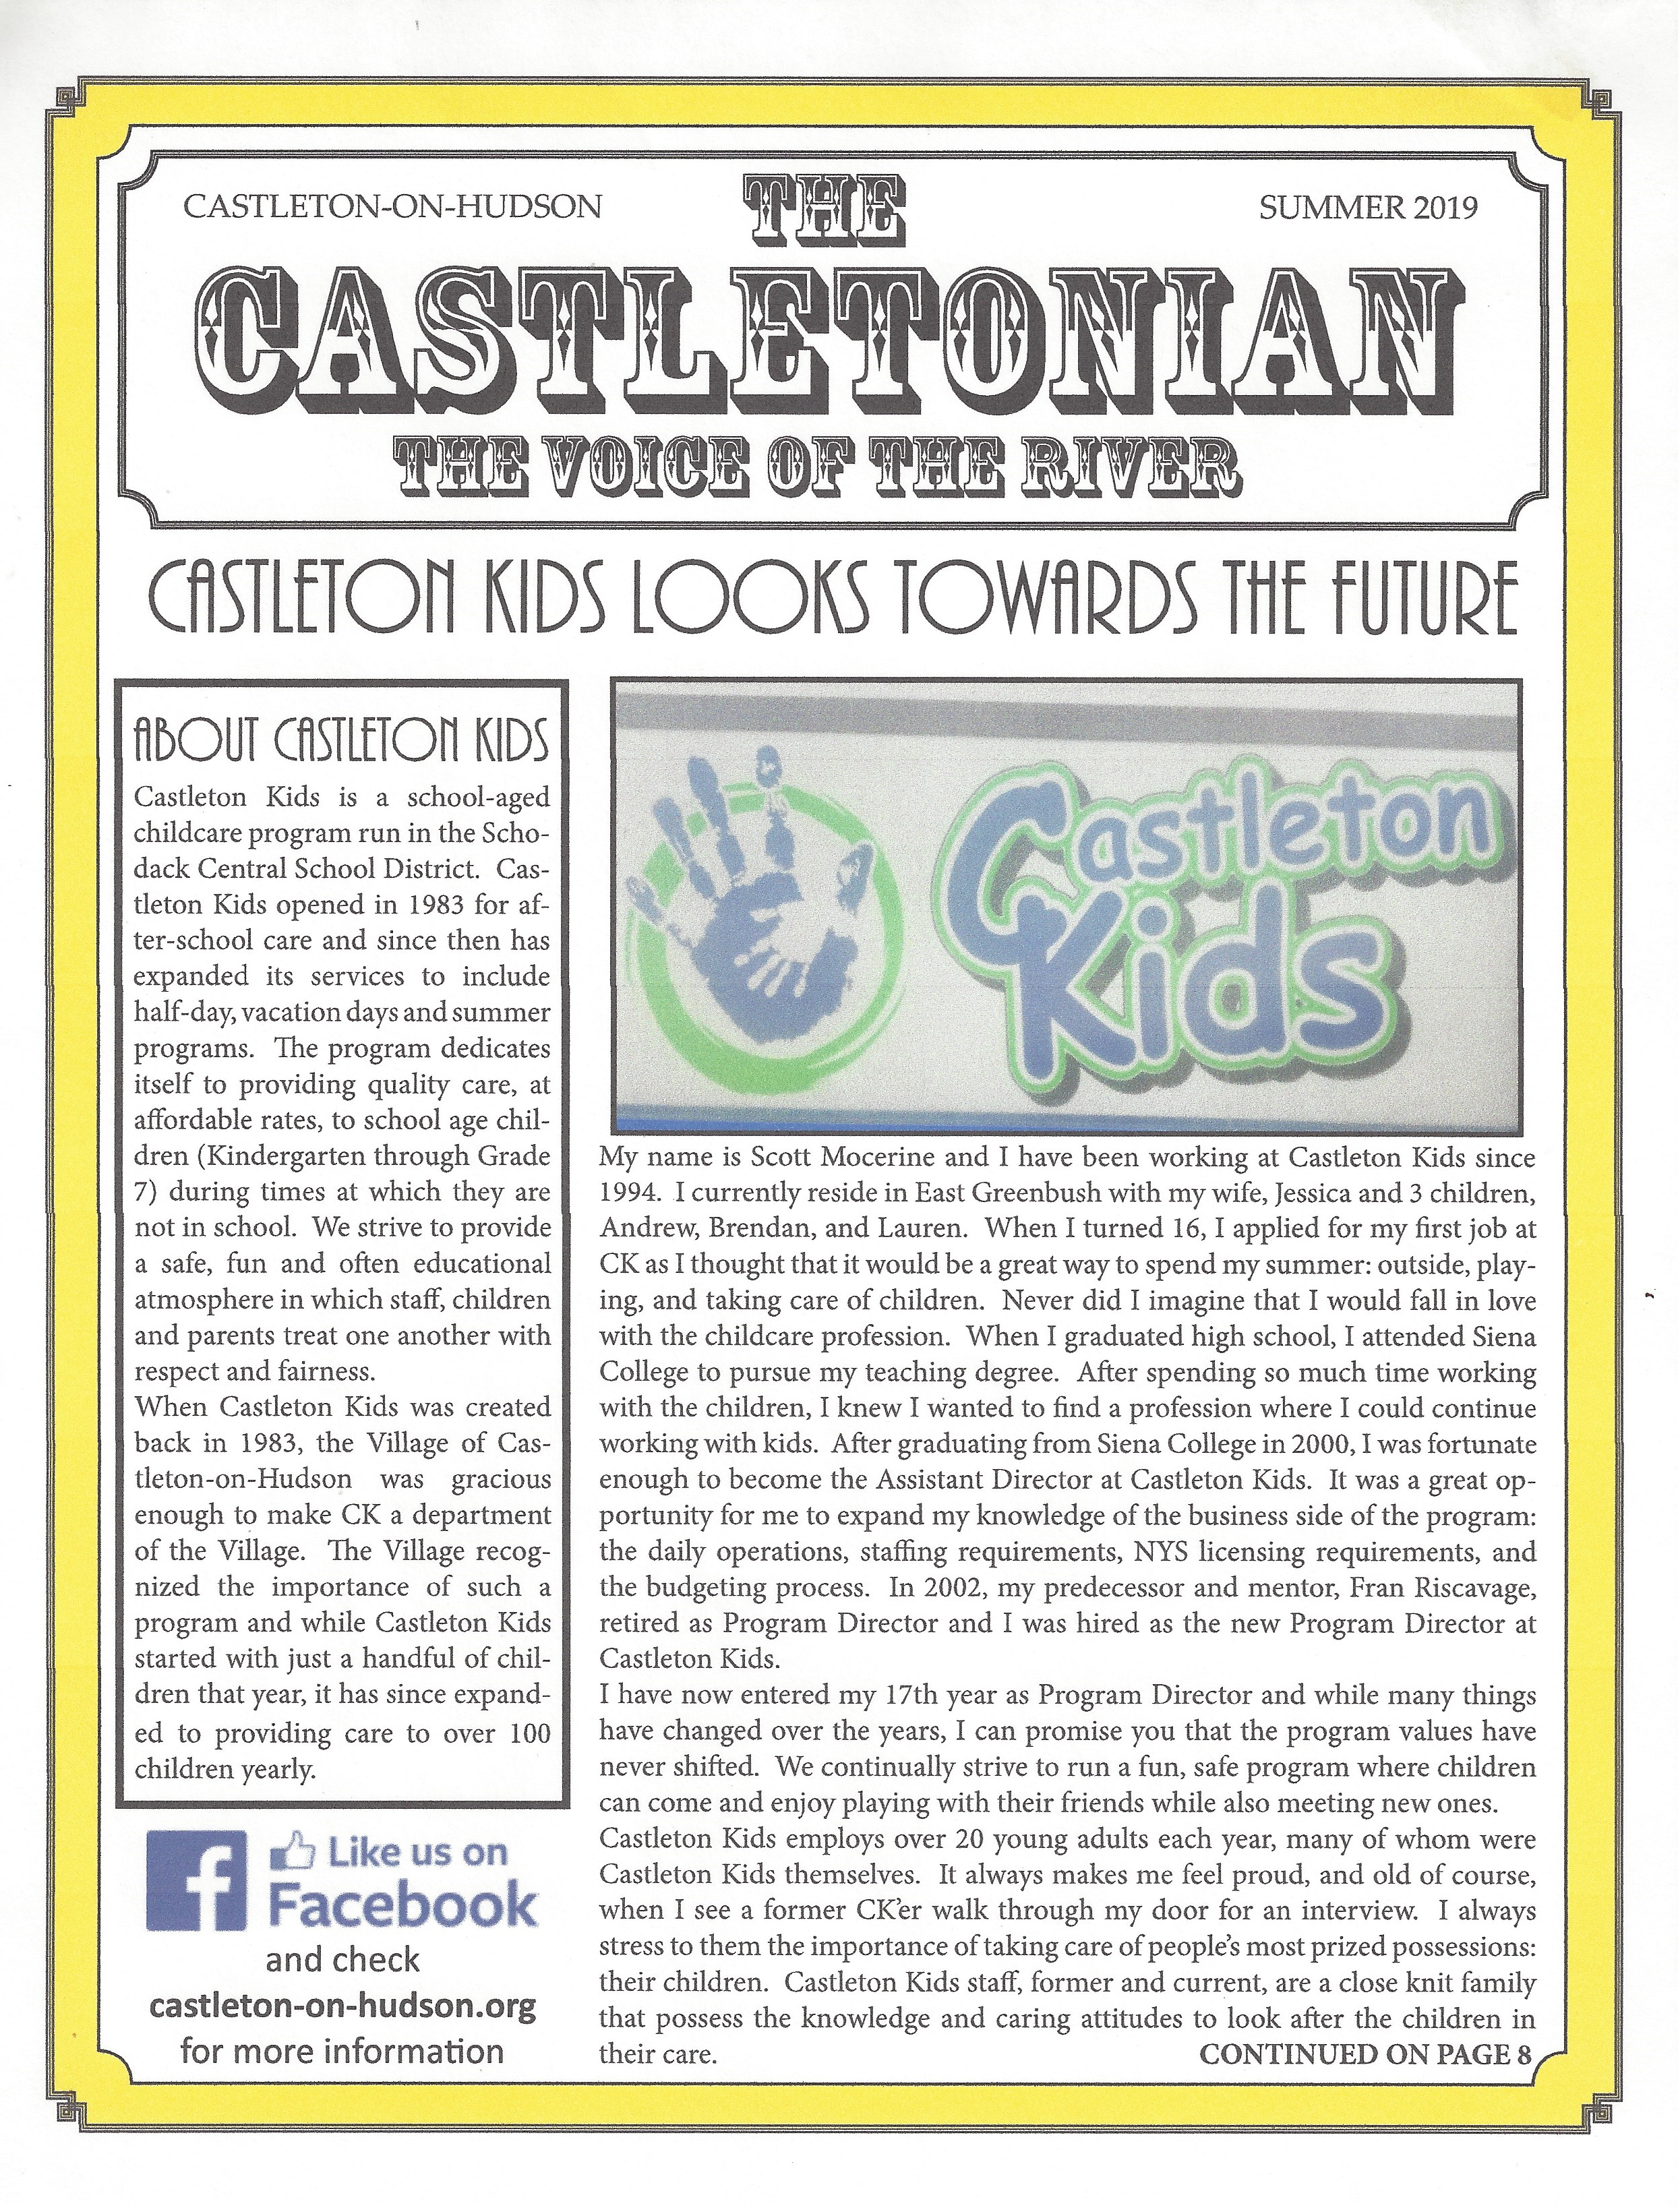 The Castletonian Summer 2019